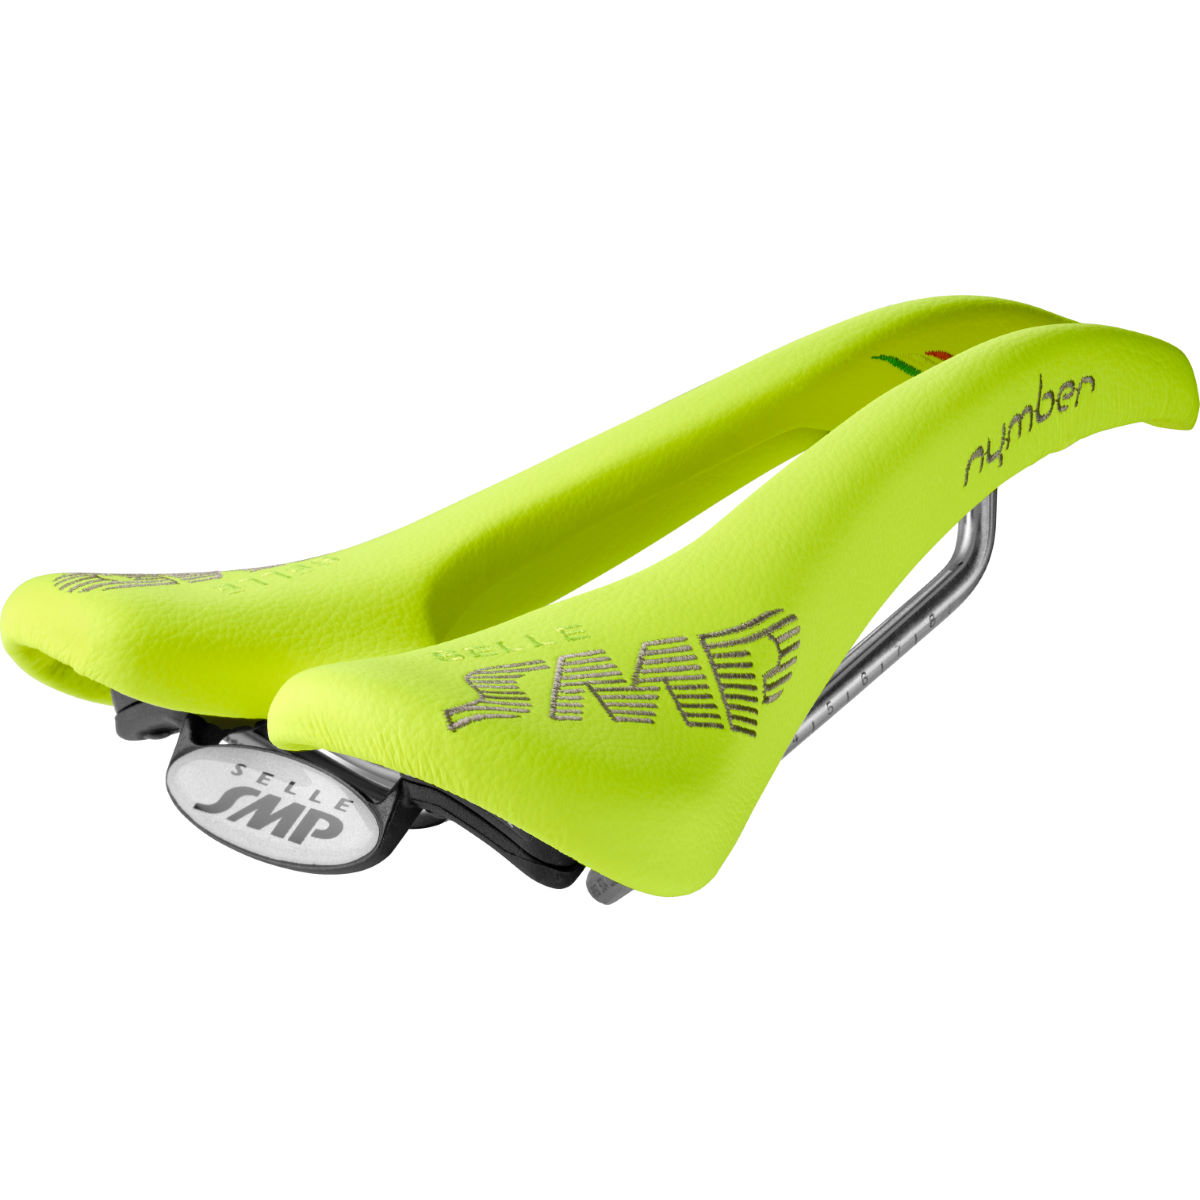 Selle Selle SMP Nymber - 267 x 139mm Jaune fluo Selles performance